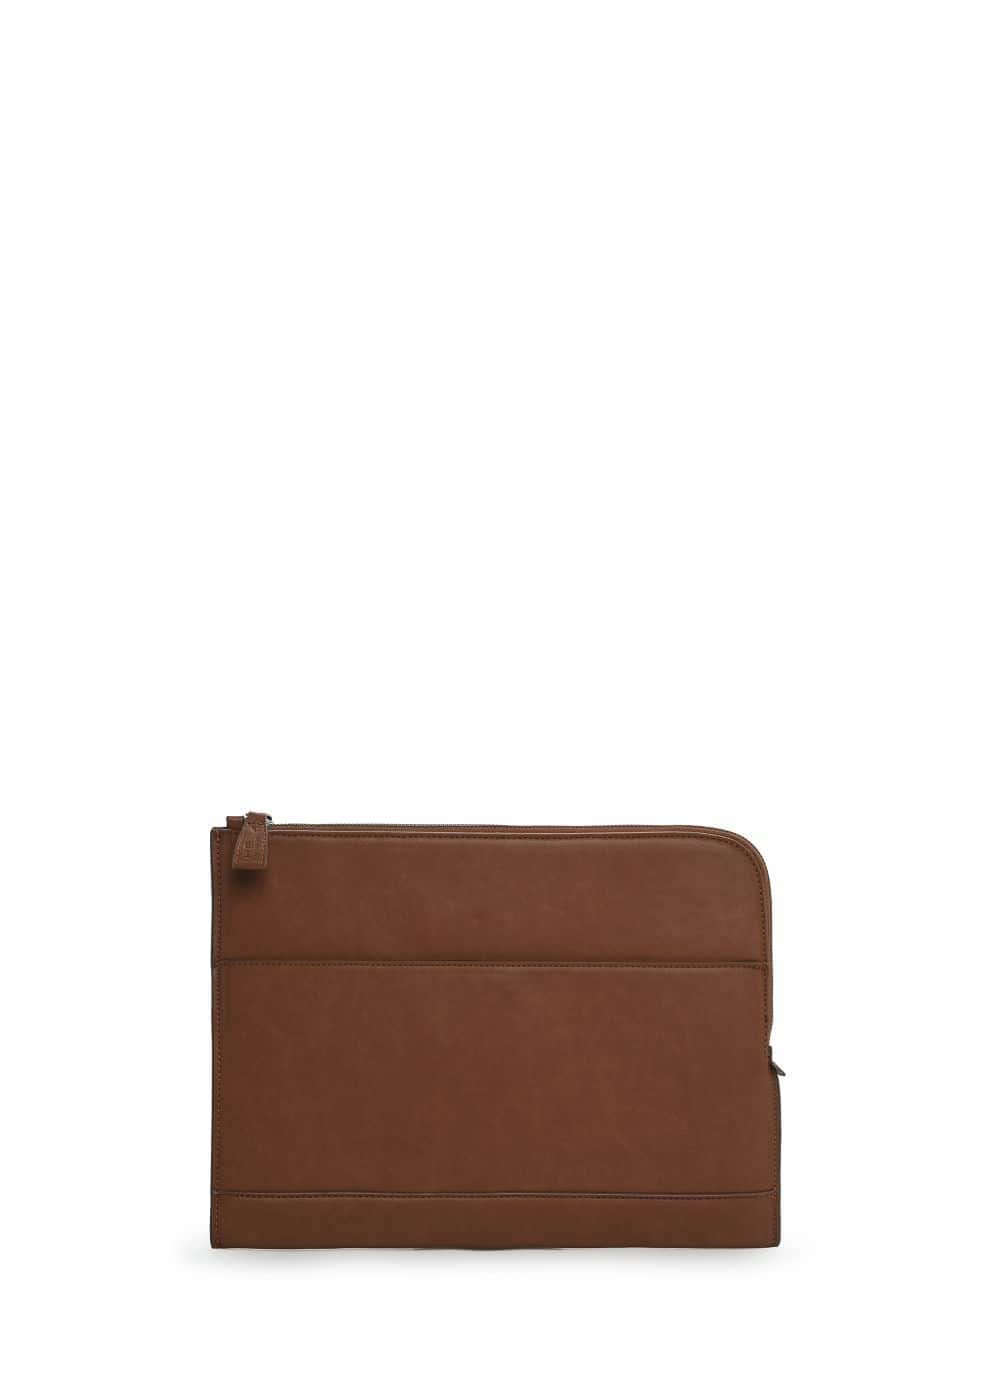 Zip document holder